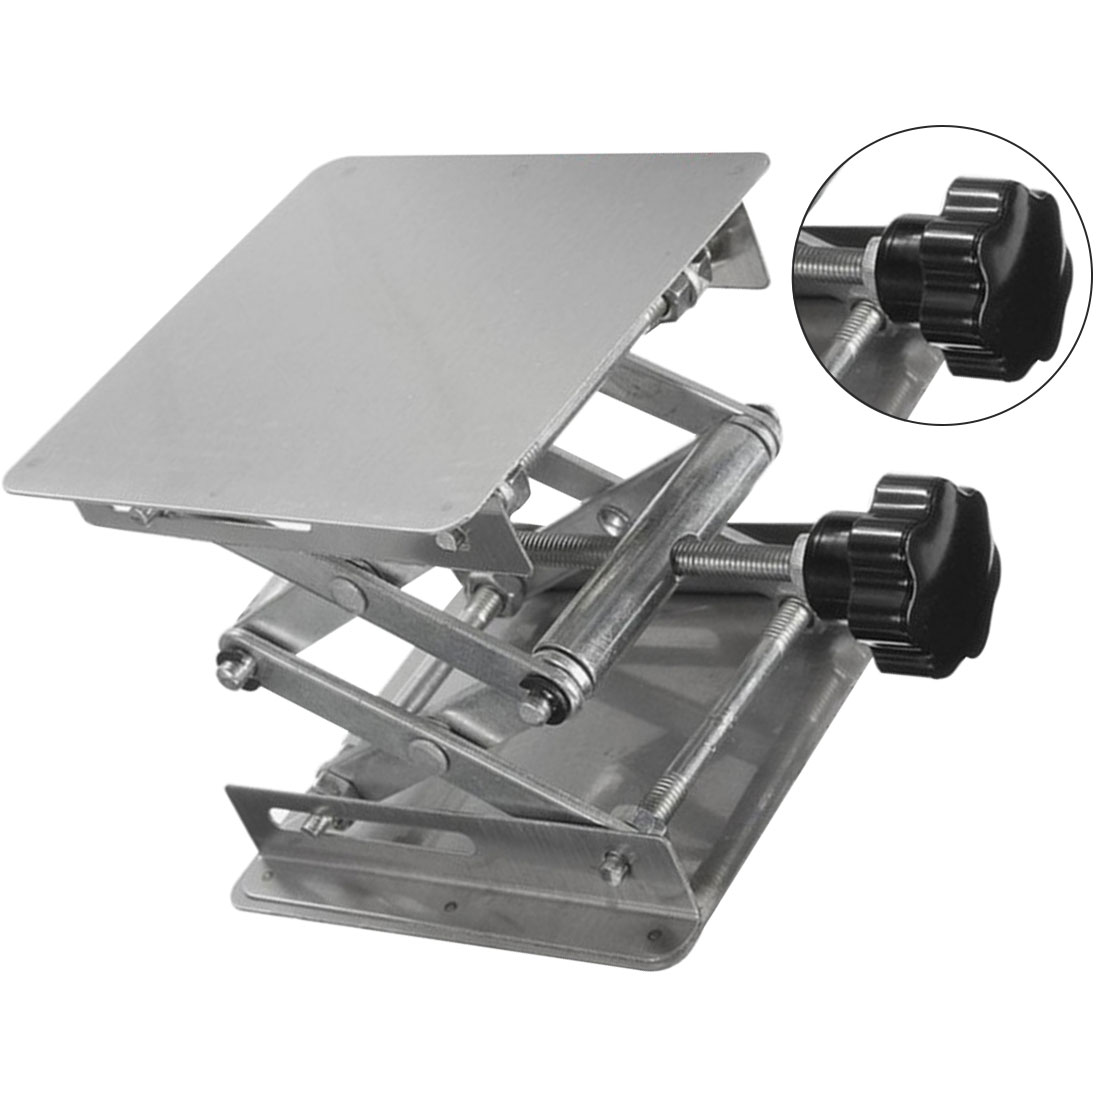 1PCS Stainless Steel Adjustable Drill Lift Laboratory Lifting Platform Table Bench <font><b>Lifter</b></font> <font><b>Router</b></font> Shank Height Woodworking Lab image